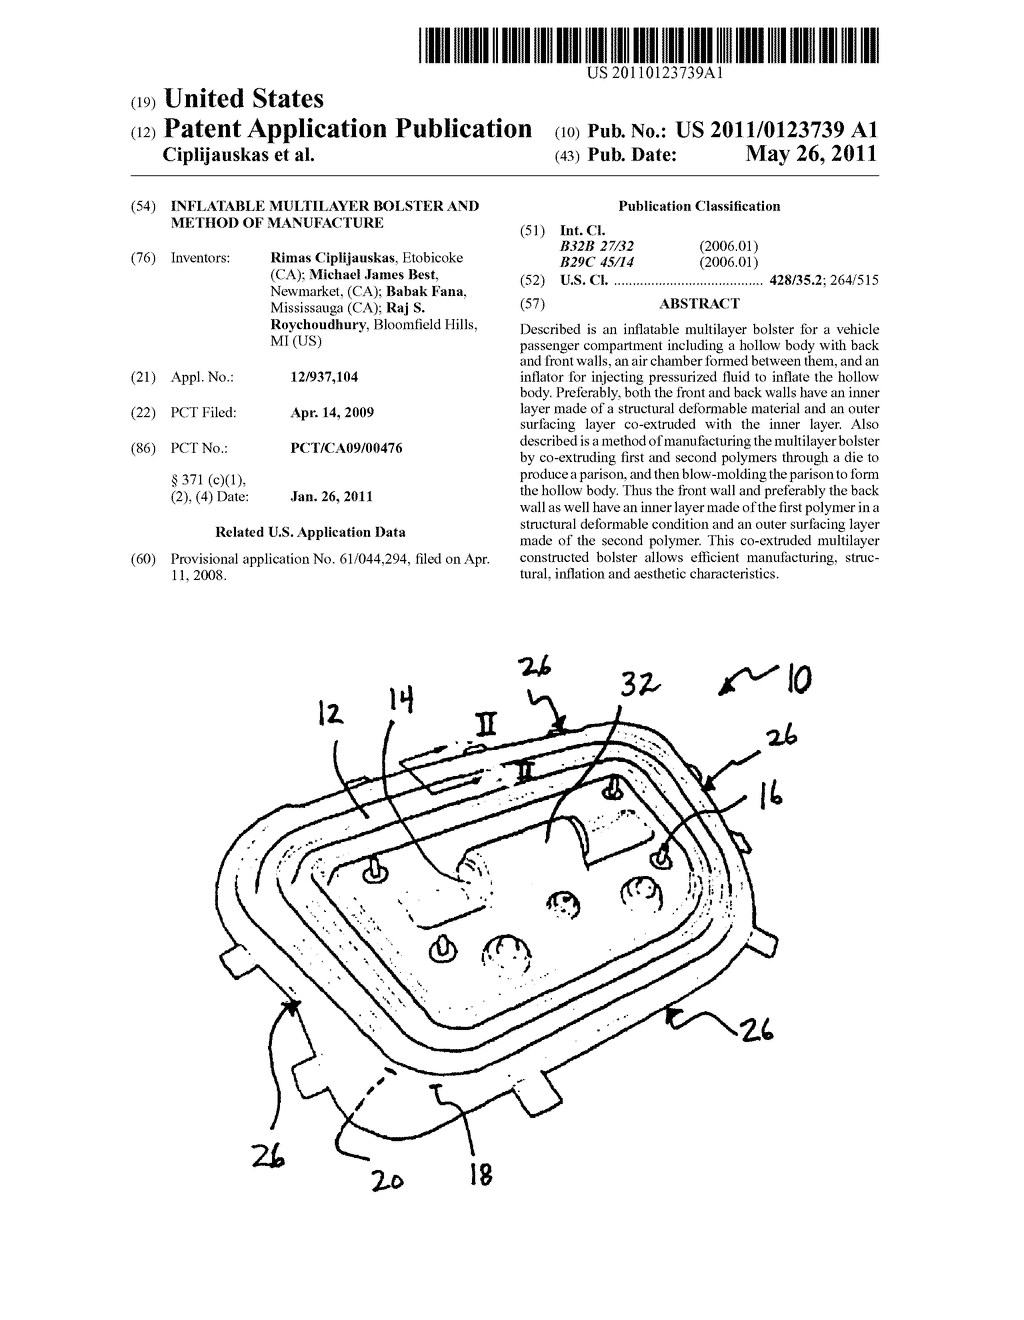 INFLATABLE MULTILAYER BOLSTER AND METHOD OF MANUFACTURE - diagram, schematic, and image 01